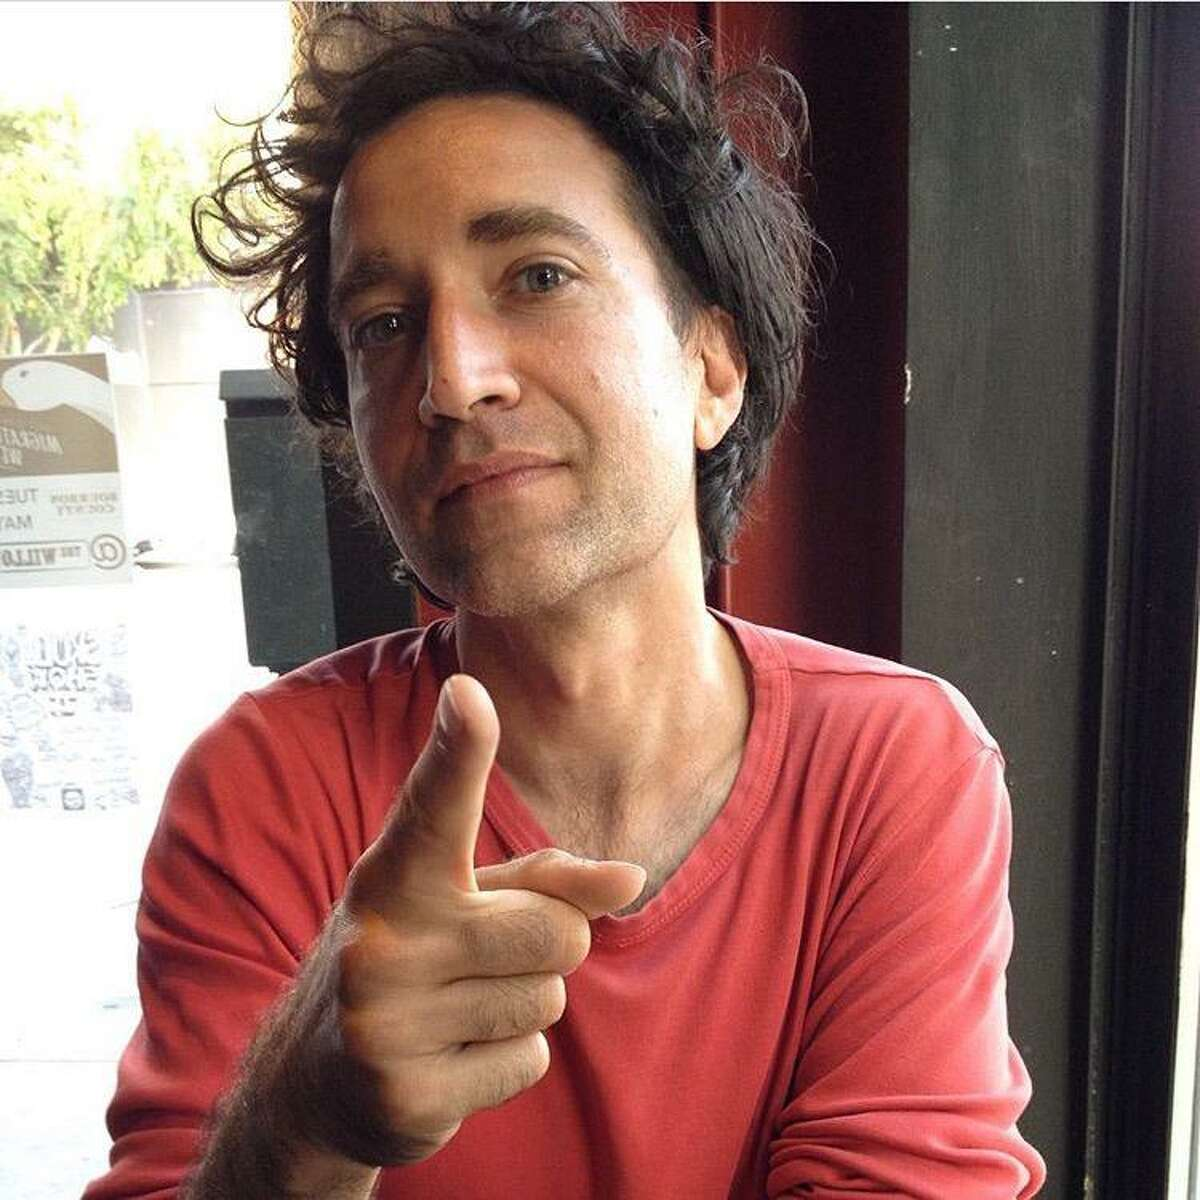 Dave Deporis, 40, was a talented musician who was tragically killed in Oakland's Temescal neighborhood on Wednesday.